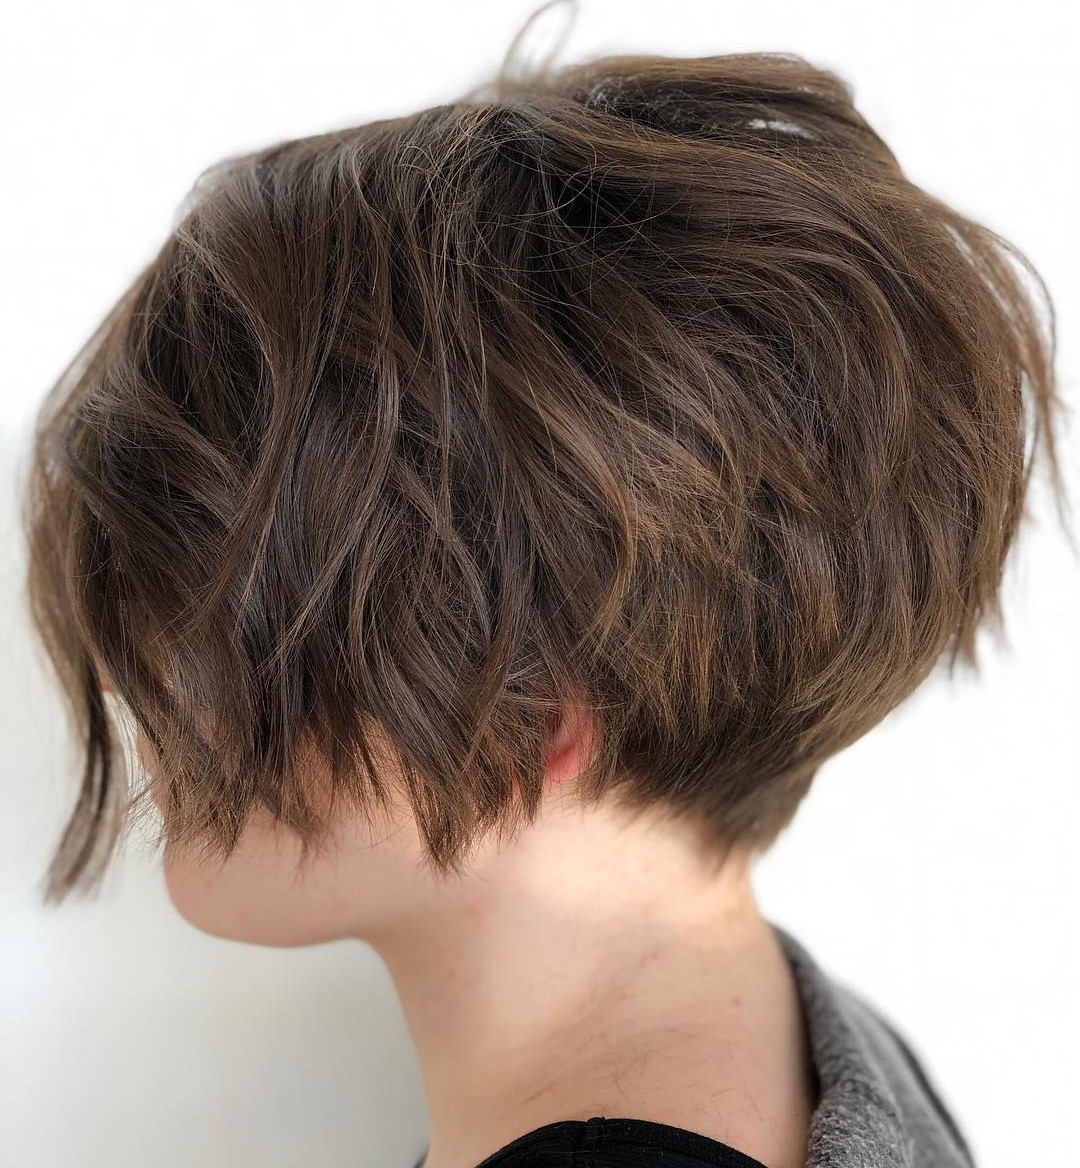 40 Short Hairstyles For Thick Hair (trendy In 2019 2020 For Golden Bronde Bob Hairstyles With Piecey Layers (View 17 of 20)